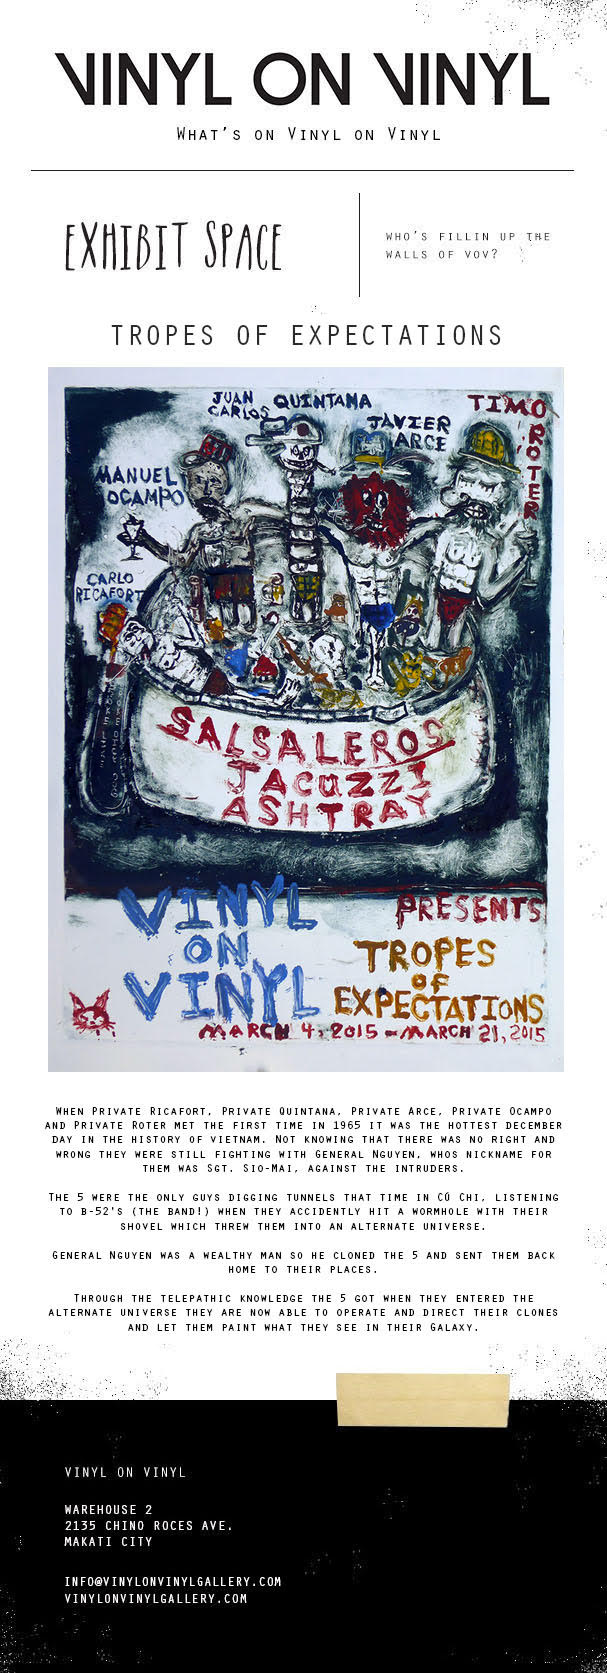 Join us on  March 4, 2014, Wednesday   for the Opening Show of    TROPES OF EXPECTATIONS   a group show featuring   MANUEL OCAMPO,   CARLO RICAFORT,   JUAN CARLOS QUINTANA,   JAVIER ARCE,   TIMO ROTER   Drop by 8 PM at Vinyl on Vinyl Gallery, 2135 Chino Roces Ave. Makati